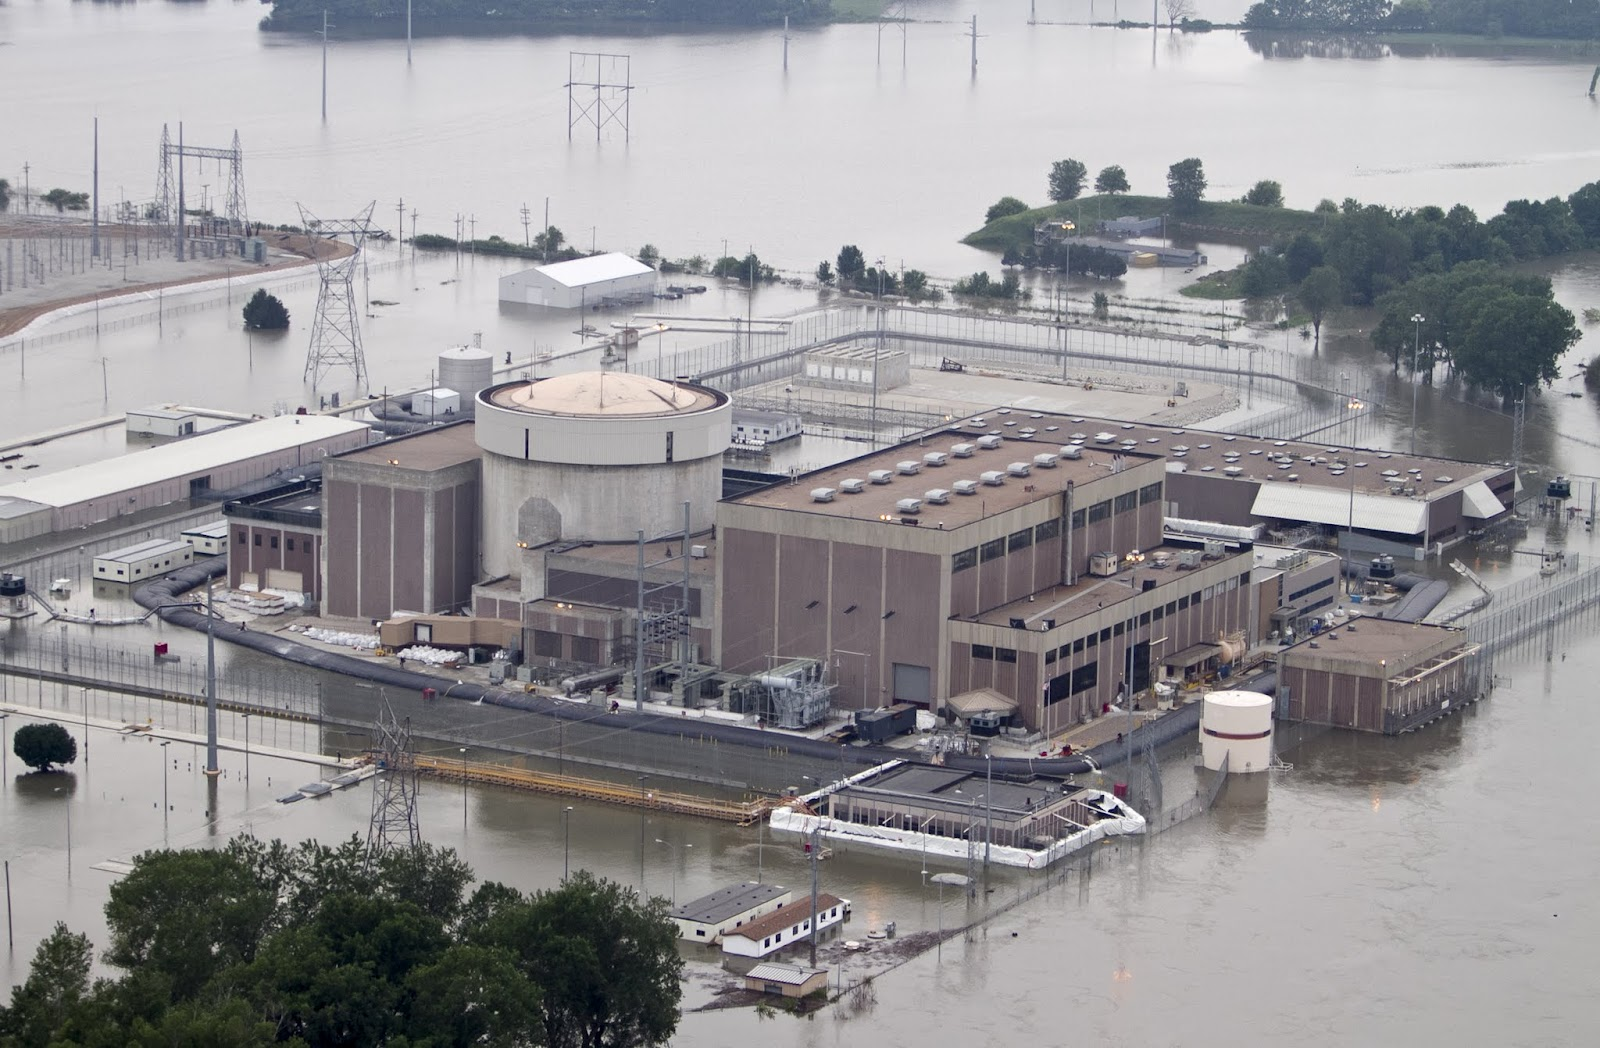 Parts of Nebraska Nuclear Facility Already Under 2 Feet of Water ... But   So Far   Emergency Flood Walls Are Protecting Electrical Equipment    fort+calhoun+hi+res+june+14th+2011+photo+AP+Nati+Harnik